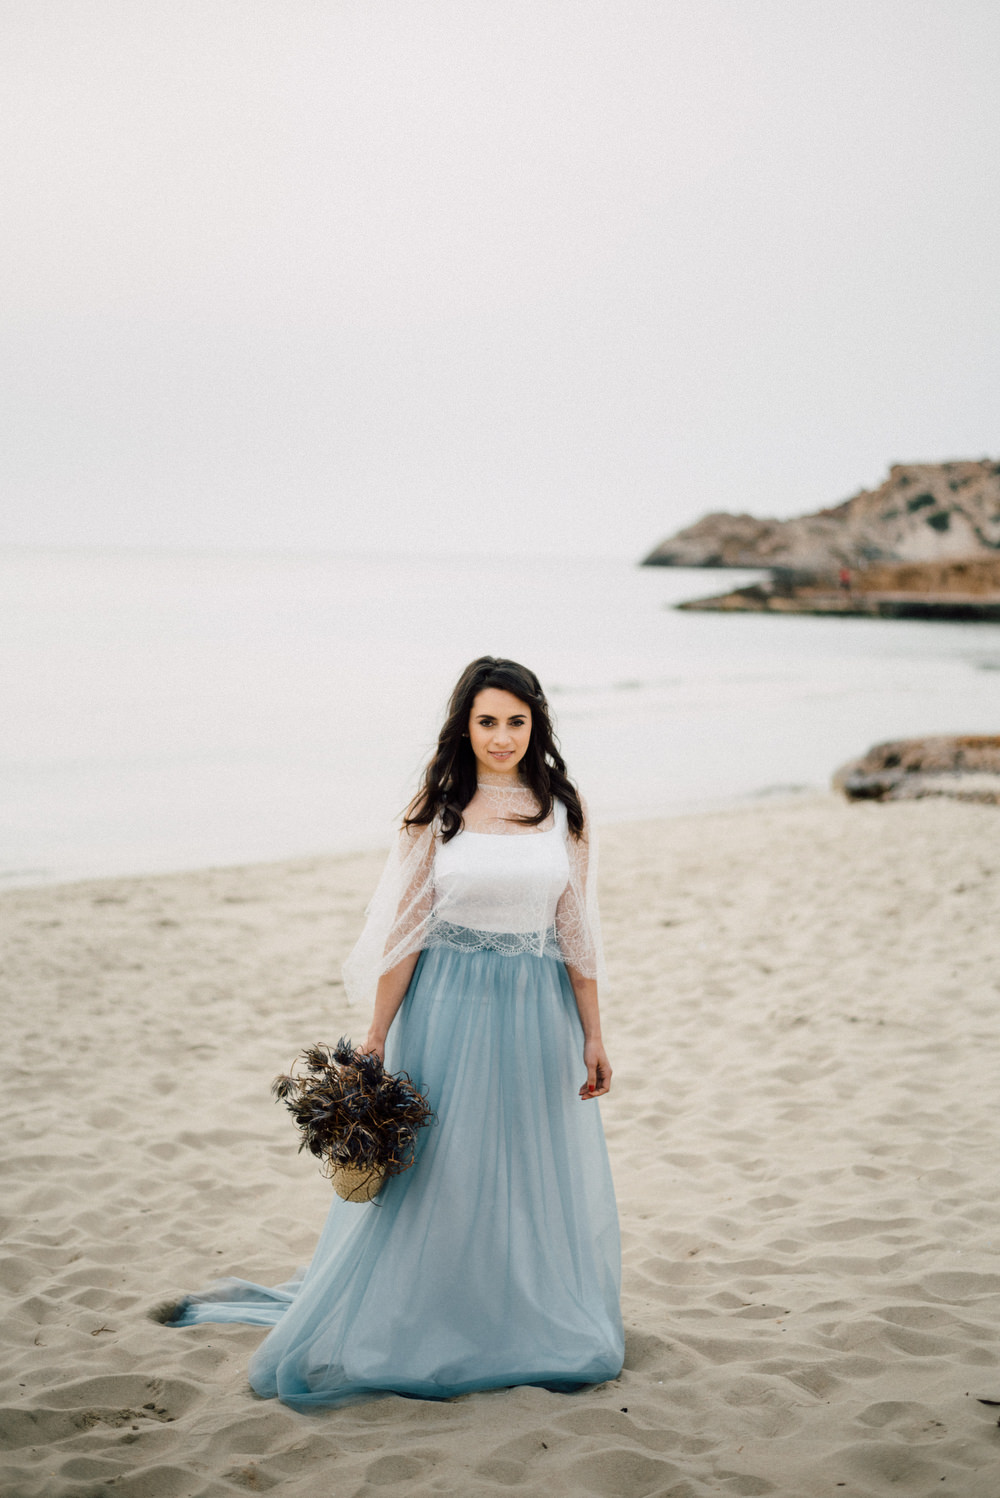 Outdoor Wild Nature Destination Spain Europe Coastal Styled Shoot Bride Blue Gown Lace   Blue Ibiza Elopement Ideas and Surprise Proposal Serena Genovese Photography